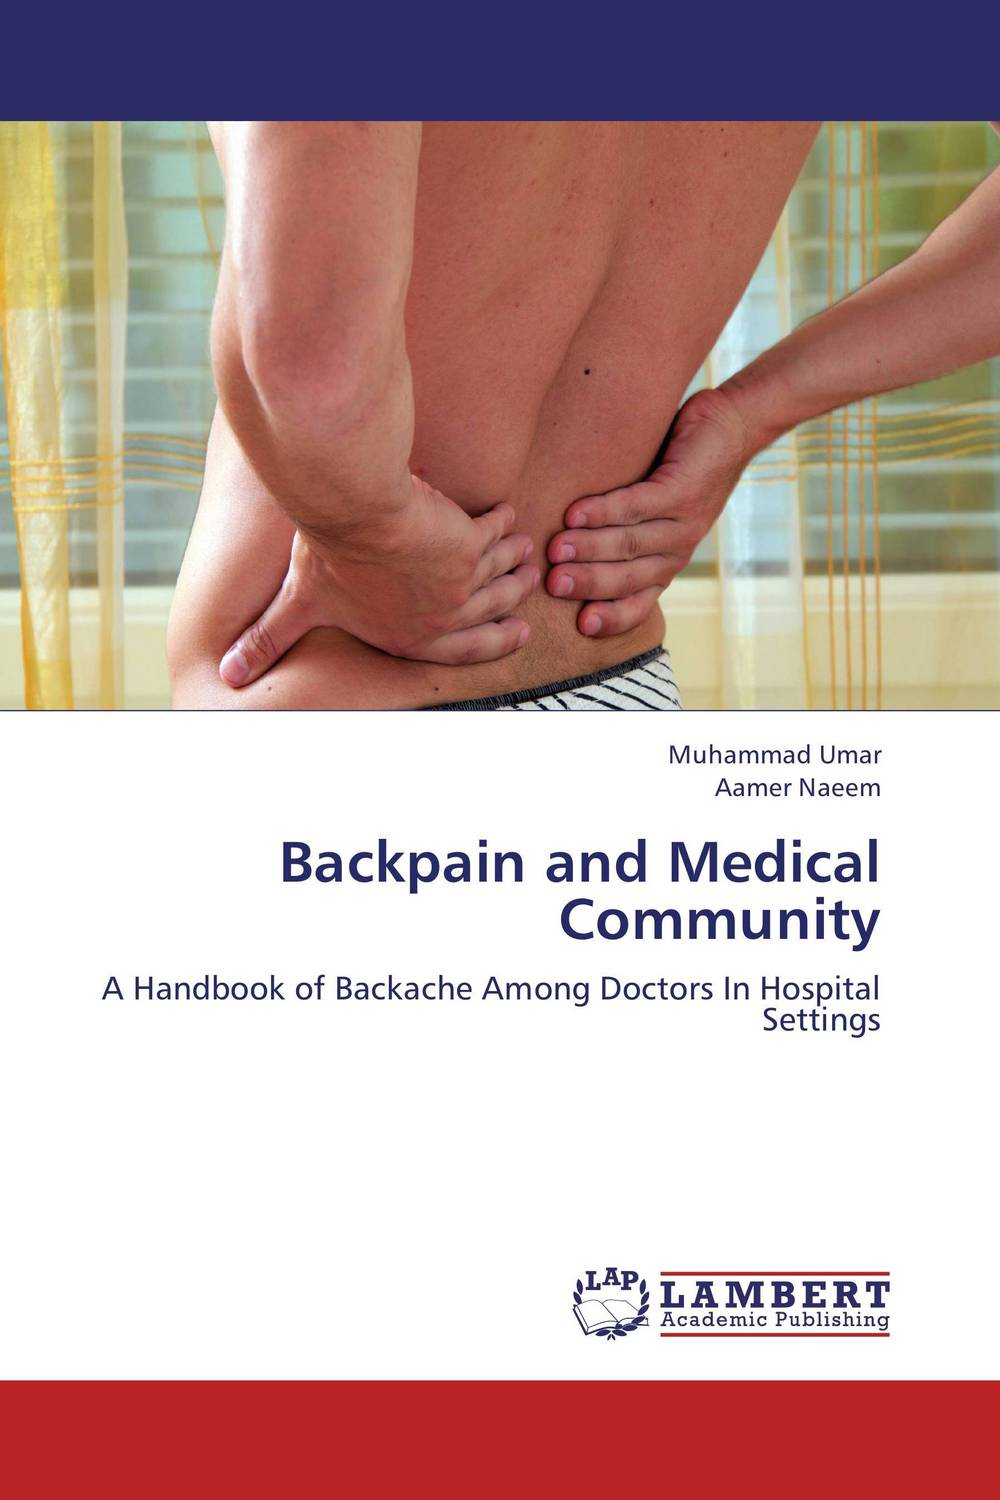 Backpain and Medical Community presidential nominee will address a gathering